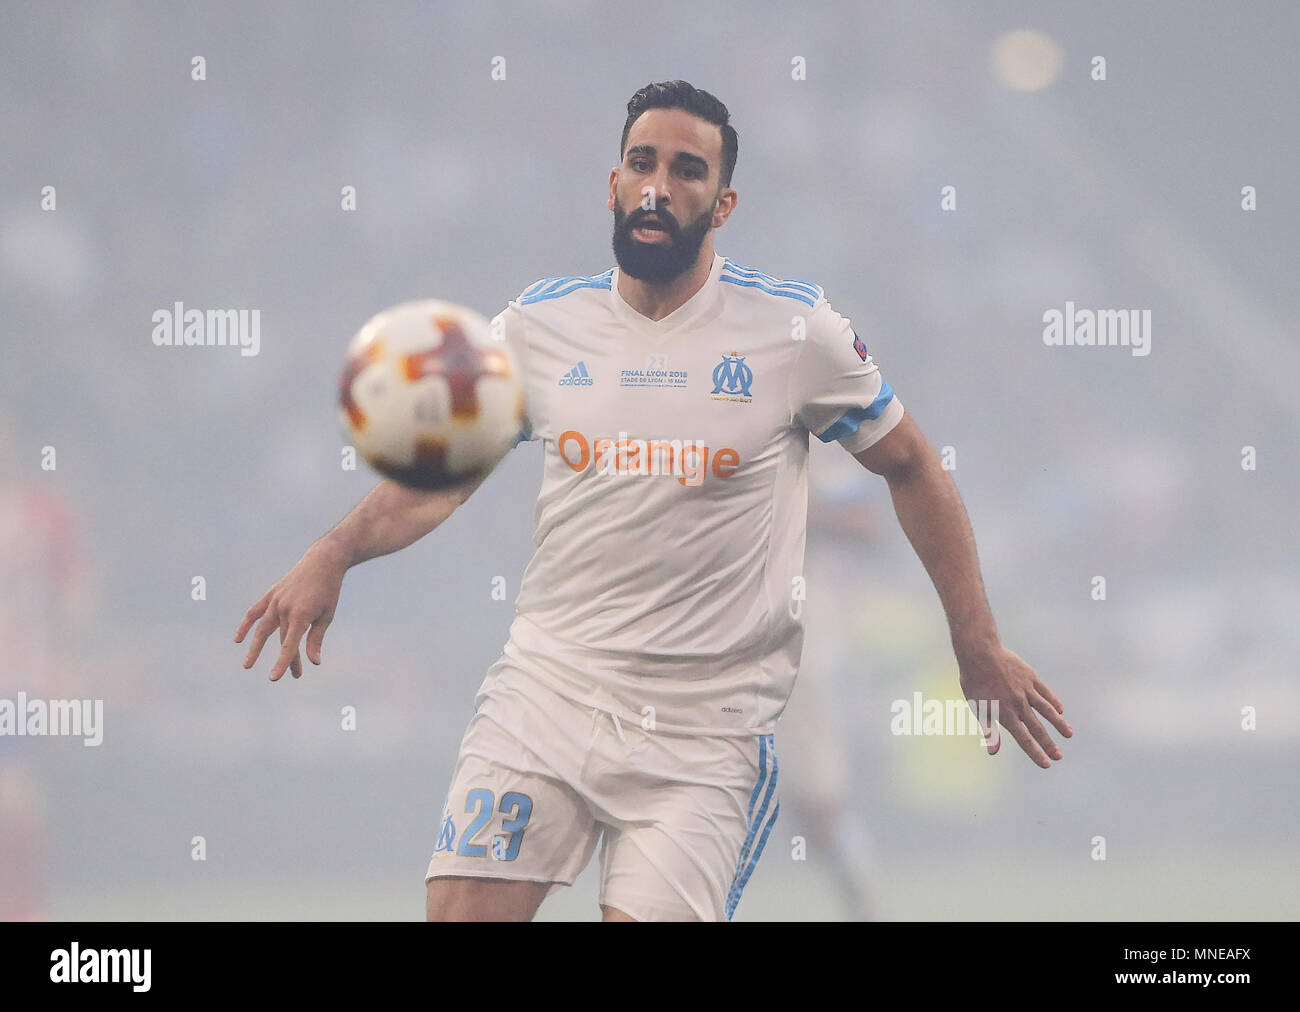 Adil Rami High Resolution Stock Photography and Images - Alamy